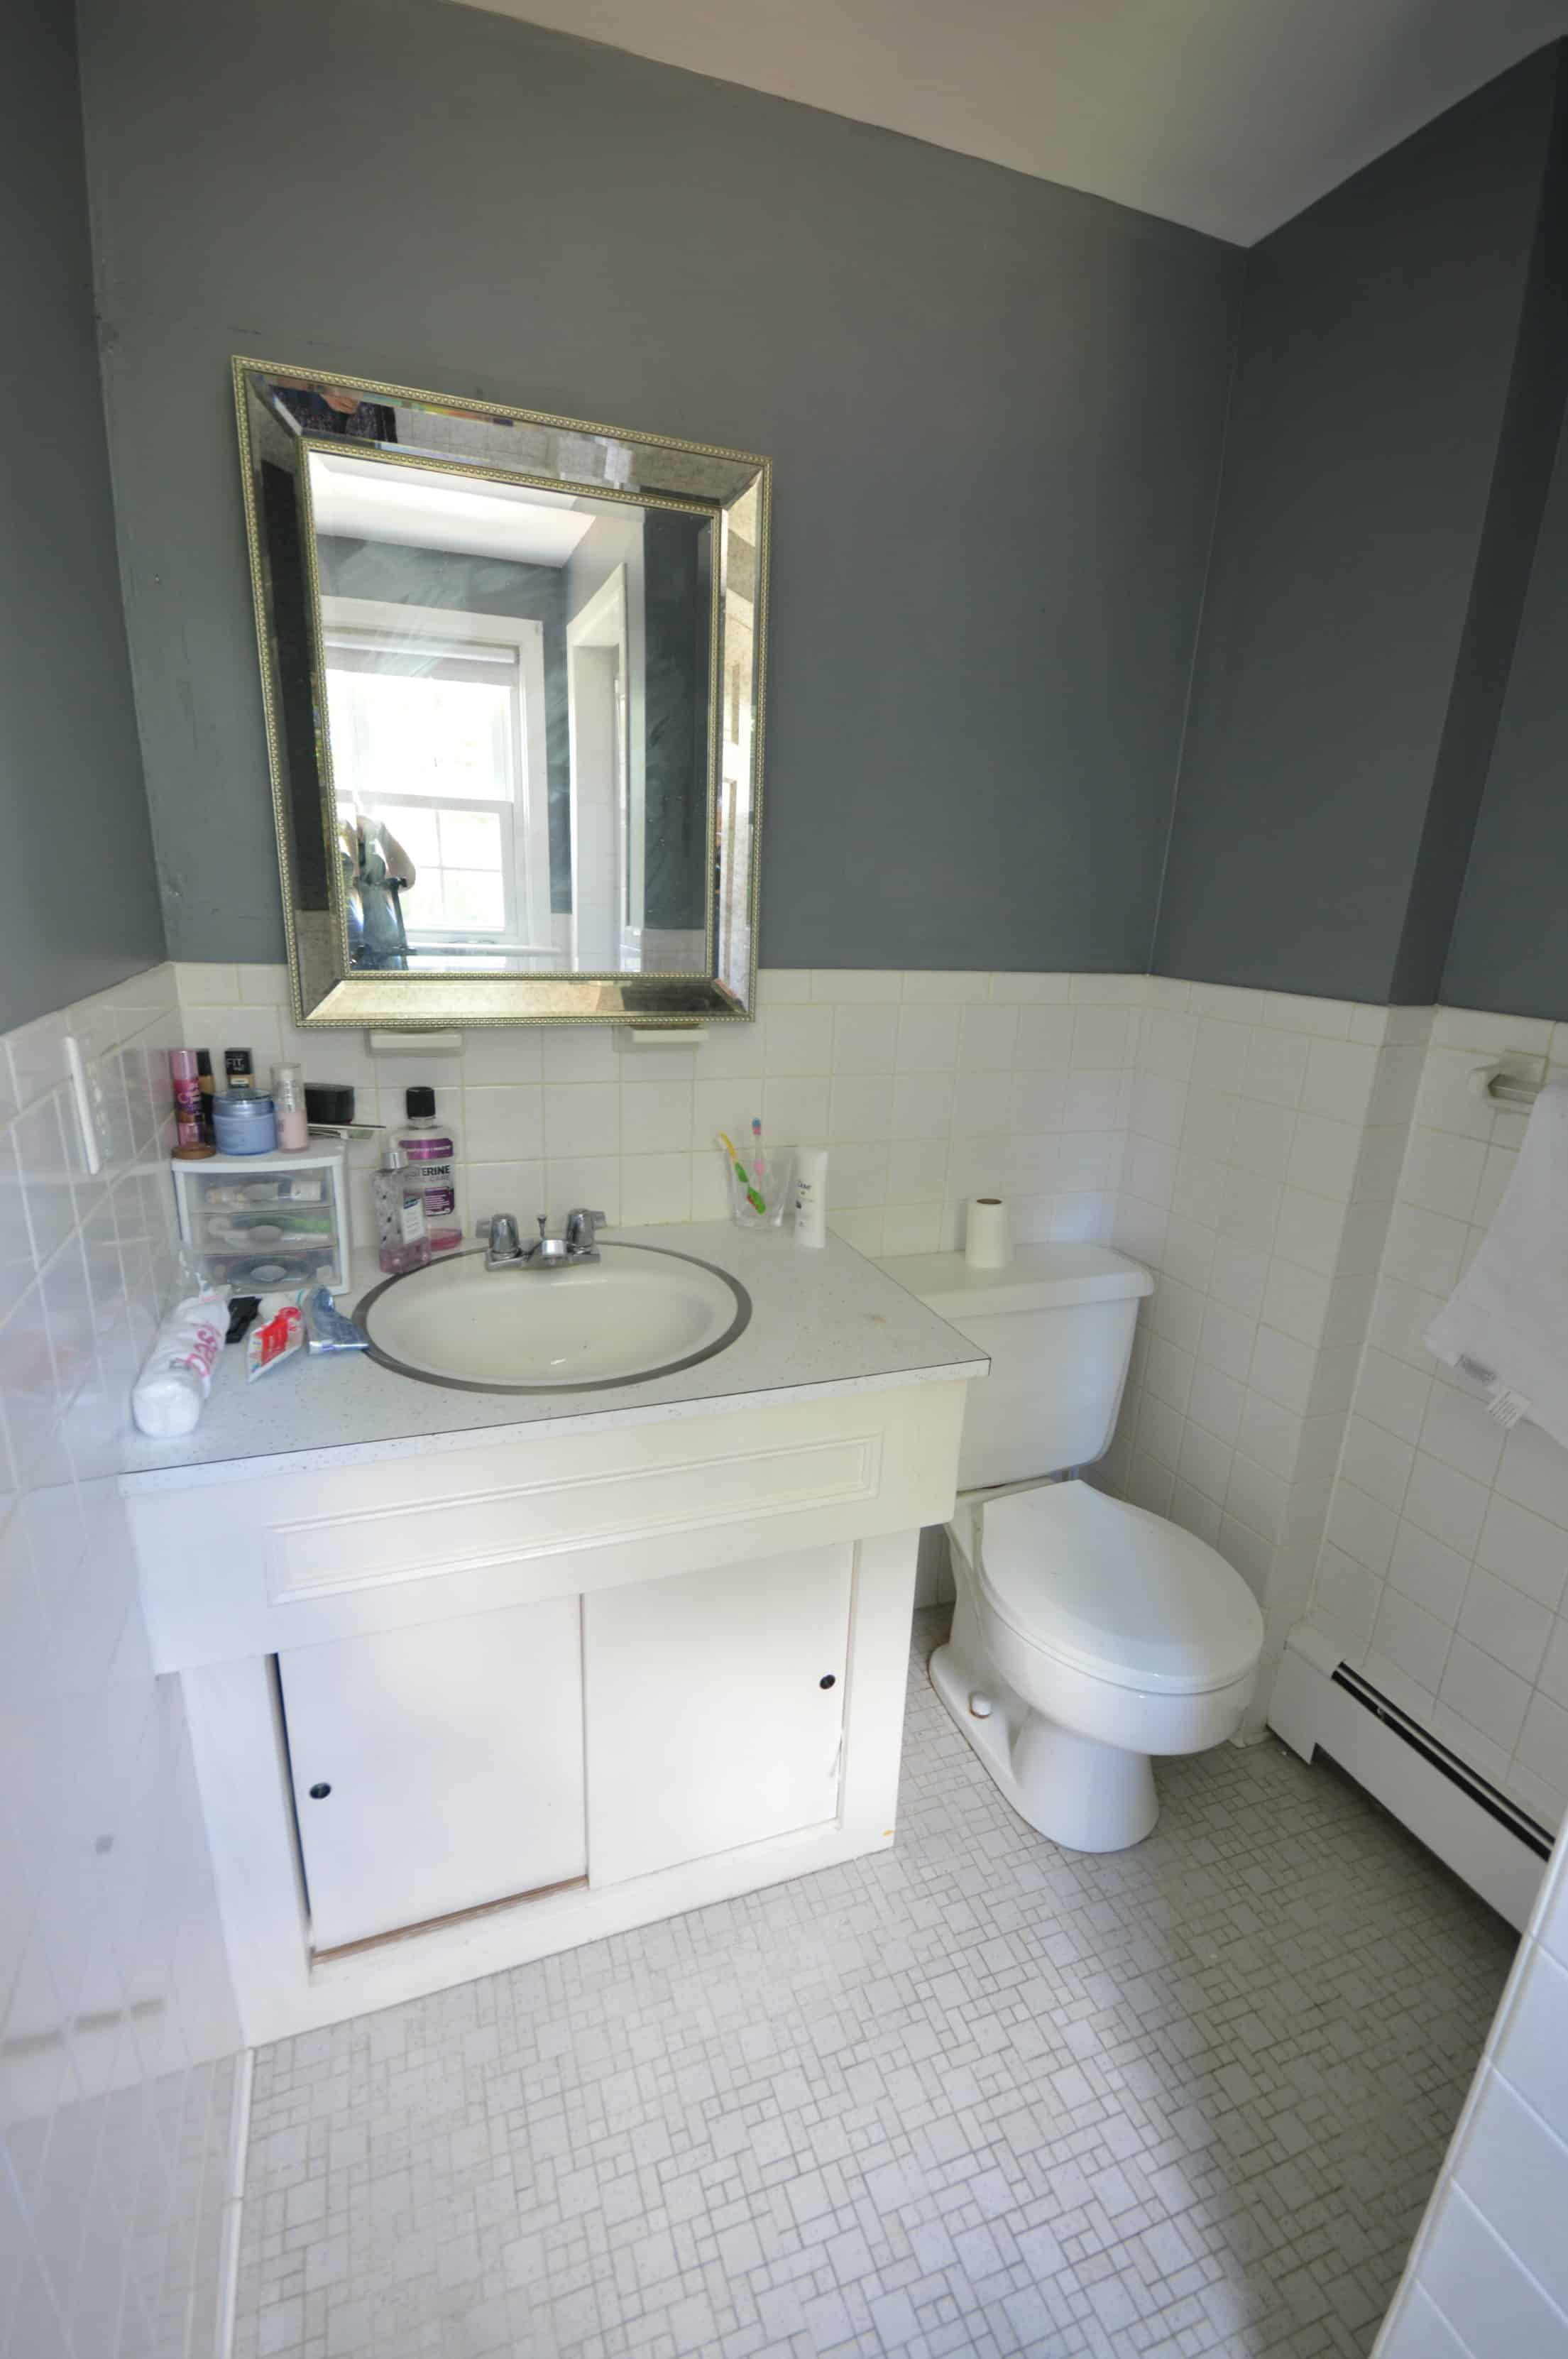 Our old master bathroom had a rusted toilet, ugly vanity, and dirty yellow grout